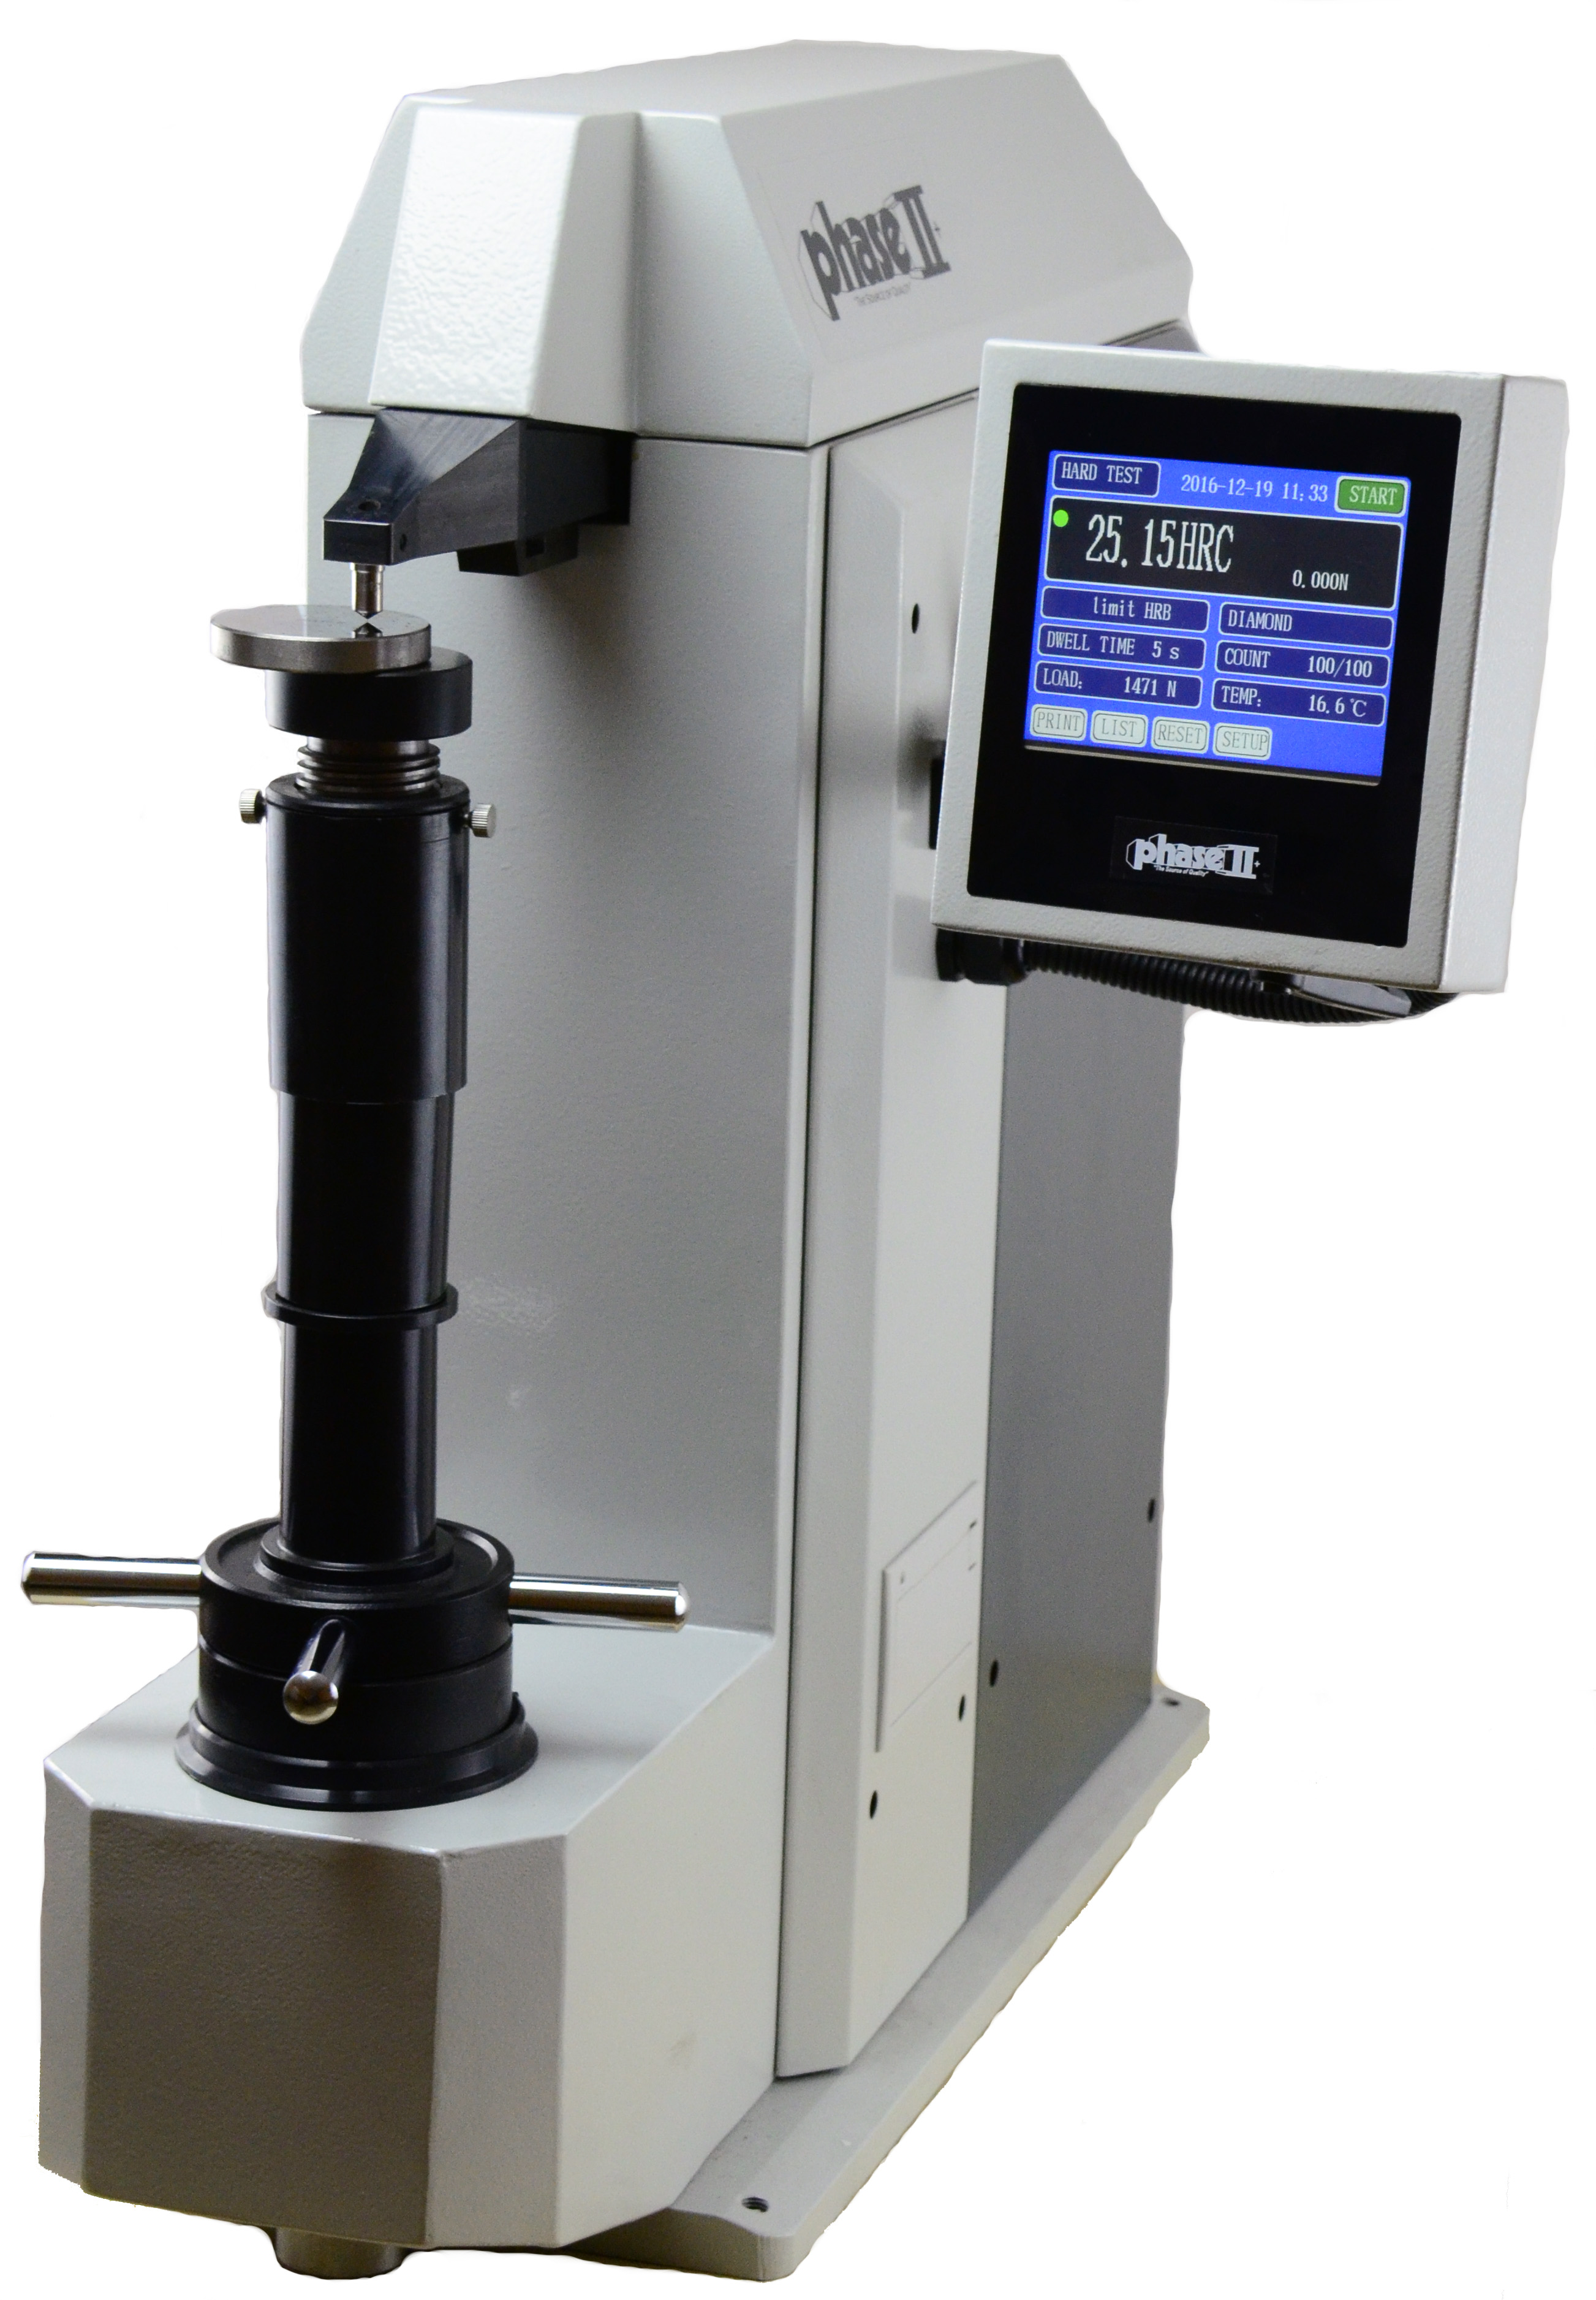 900-387 - Twin Rockwell / Superficial Hardness Tester